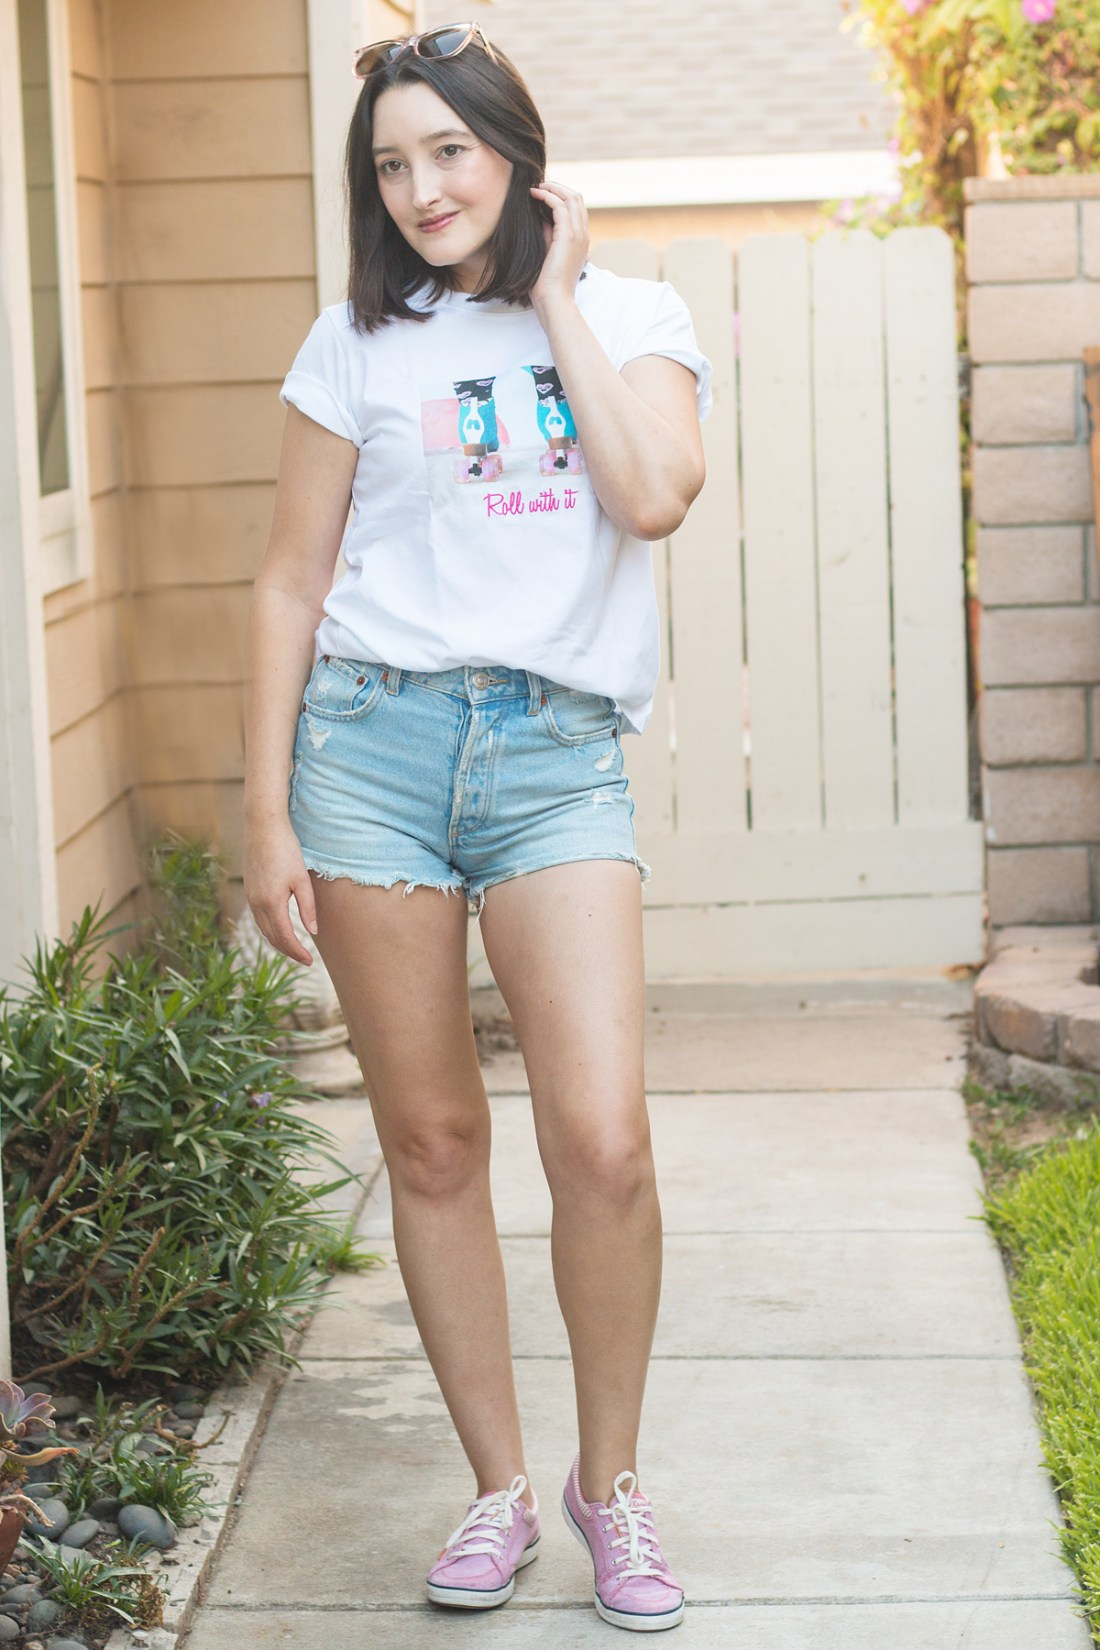 Denim jeans and graphic tee summer style | A Good Hue